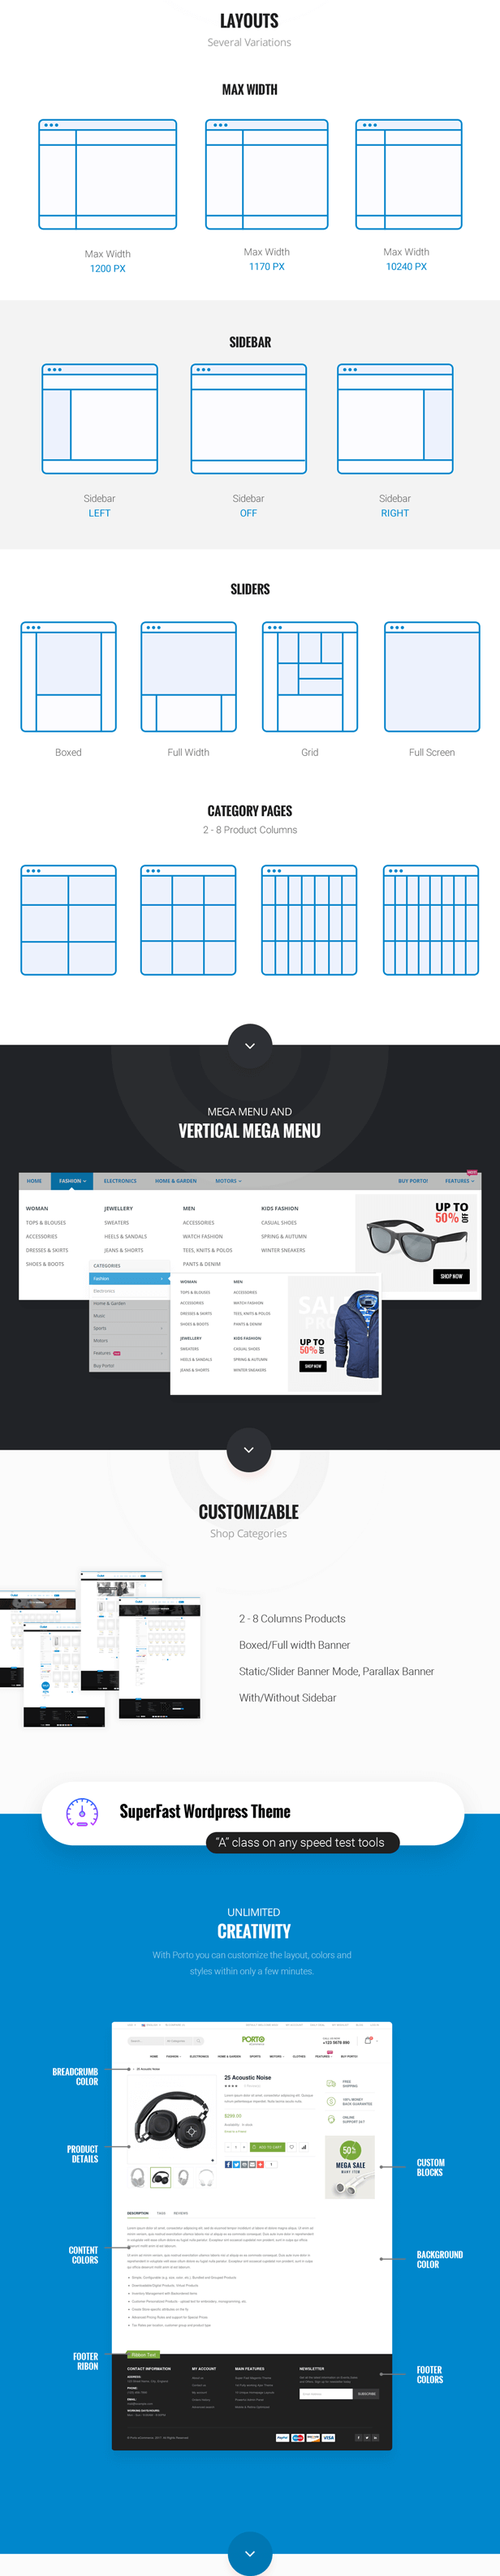 porto3 - Porto | Responsive WordPress + eCommerce Theme